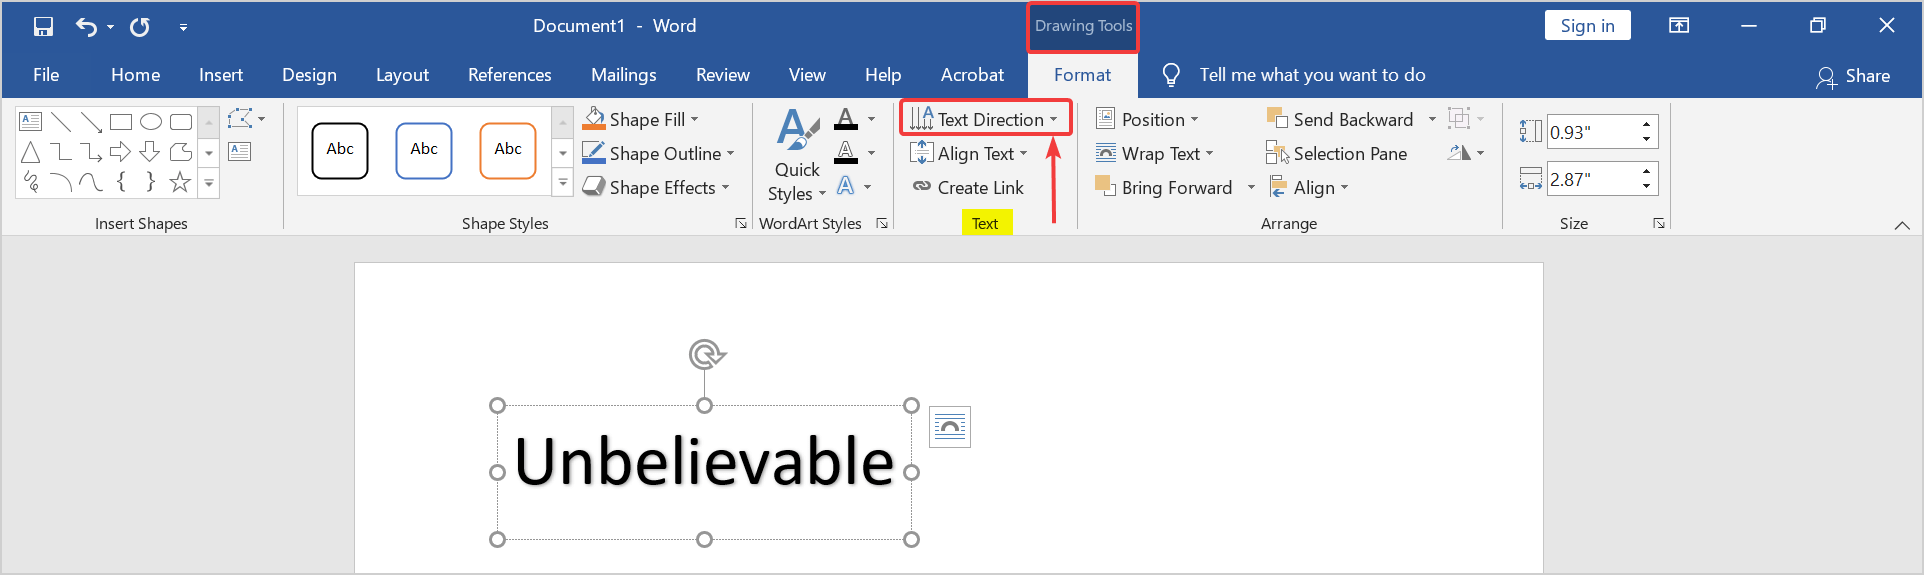 How to change the orientation of text in Microsoft Word